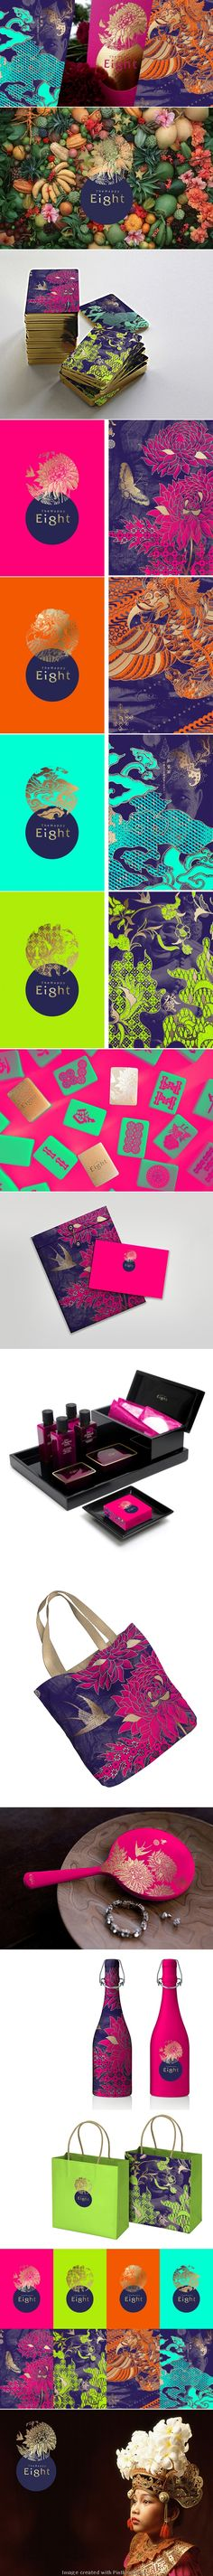 Who could resist this stellar Happy Eight Hotel #identity #packaging #branding PD created via http://www.thedieline.com/blog/2014/3/17/the-happy-eight-hotel-branding?utm_medium=twitter&utm_source=twitterfeed